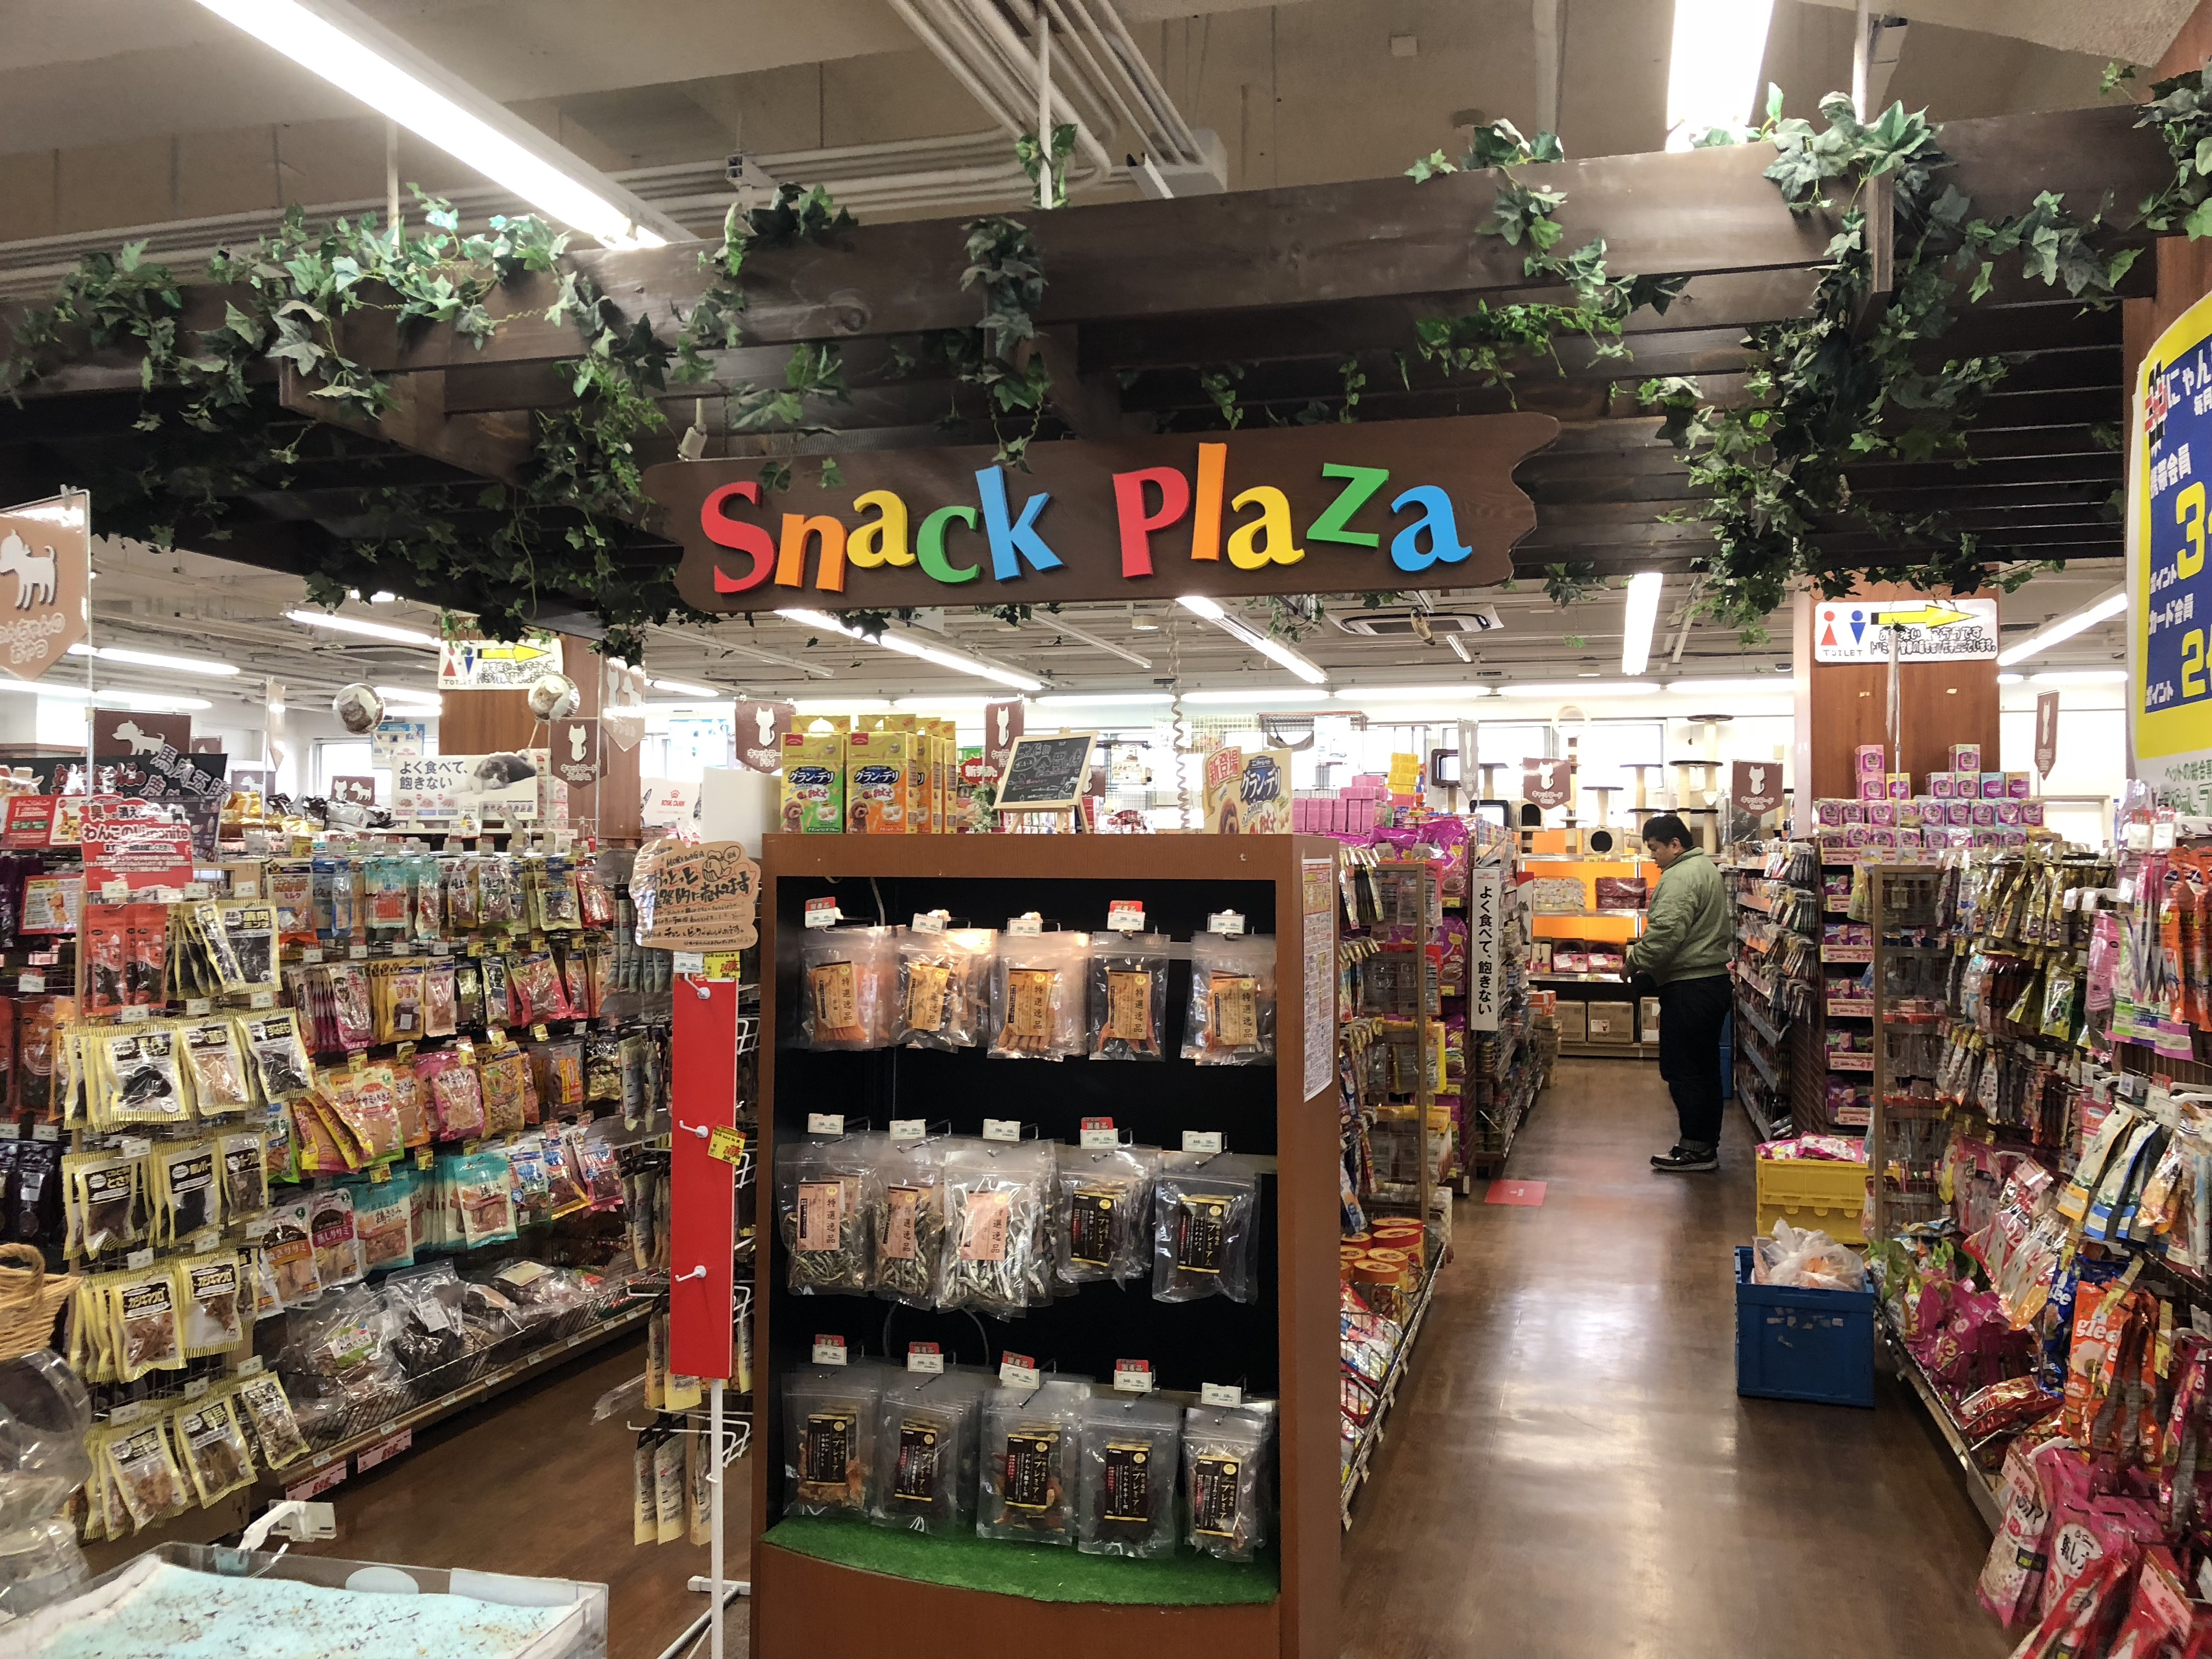 Aisles of a pet store in Kyoto, in Japan, the Snack Plaza, with many dog treats and cat treats.